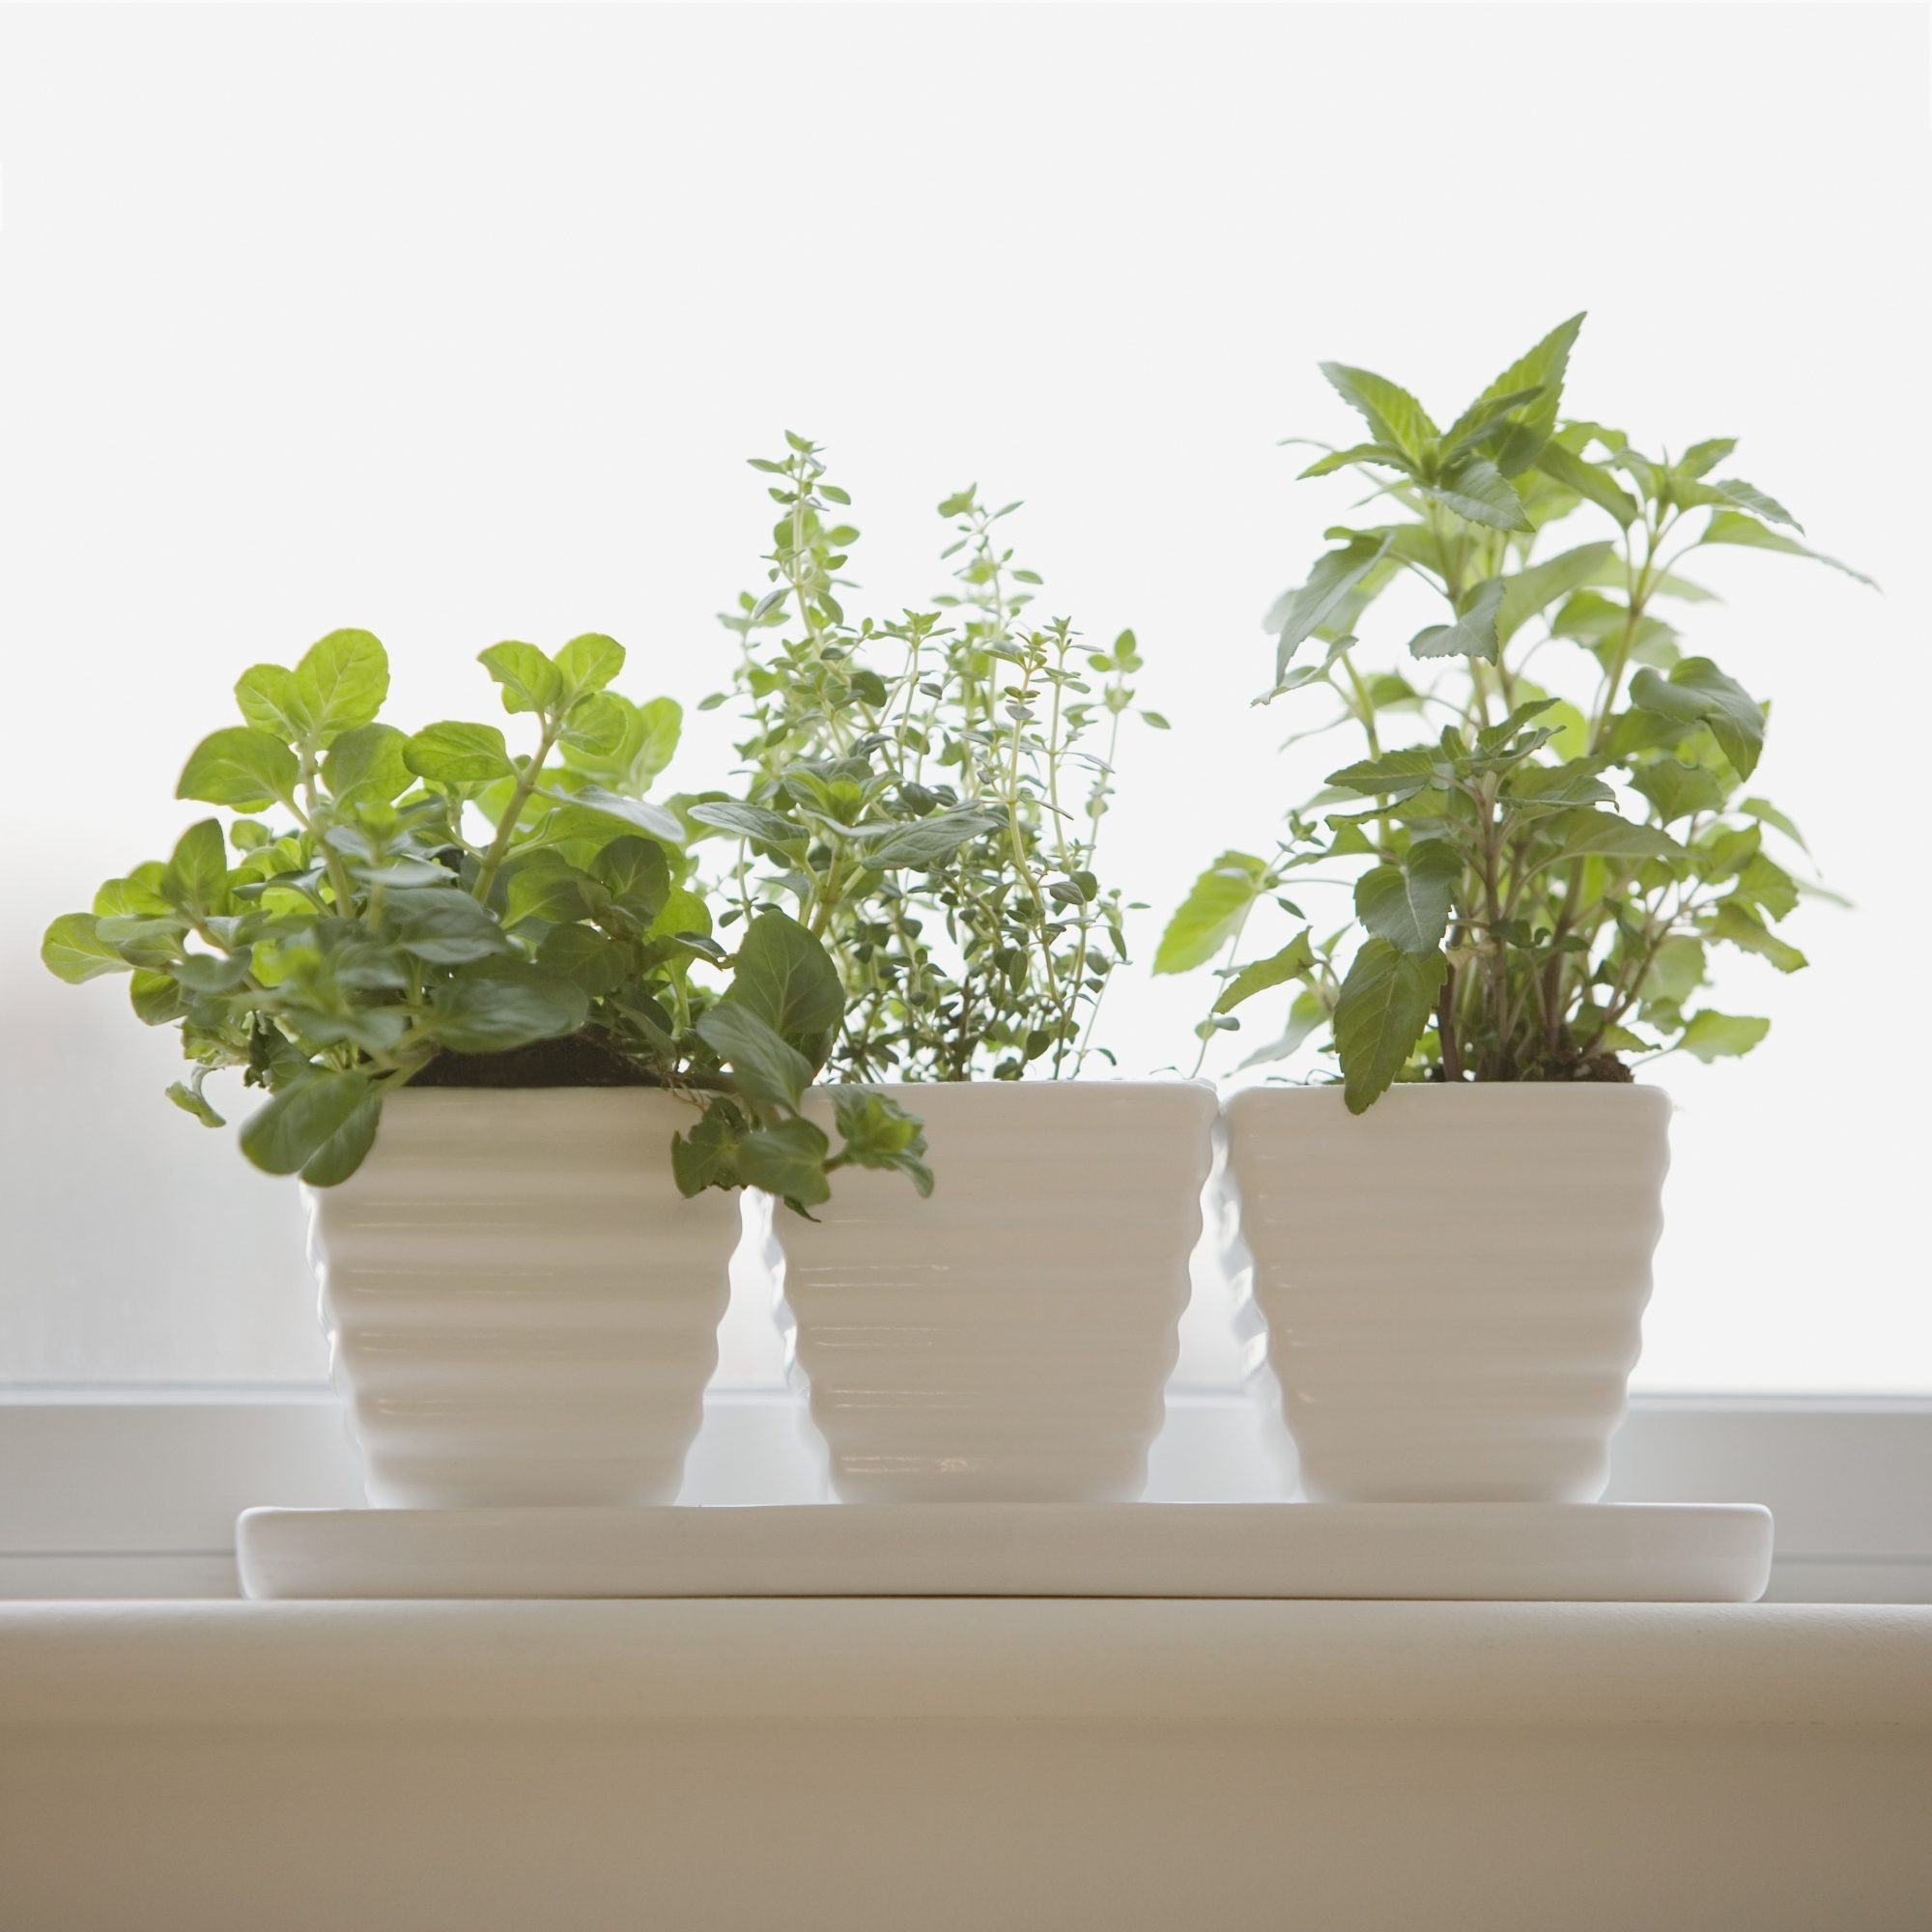 How To Have An Indoor Herb Garden This Winter